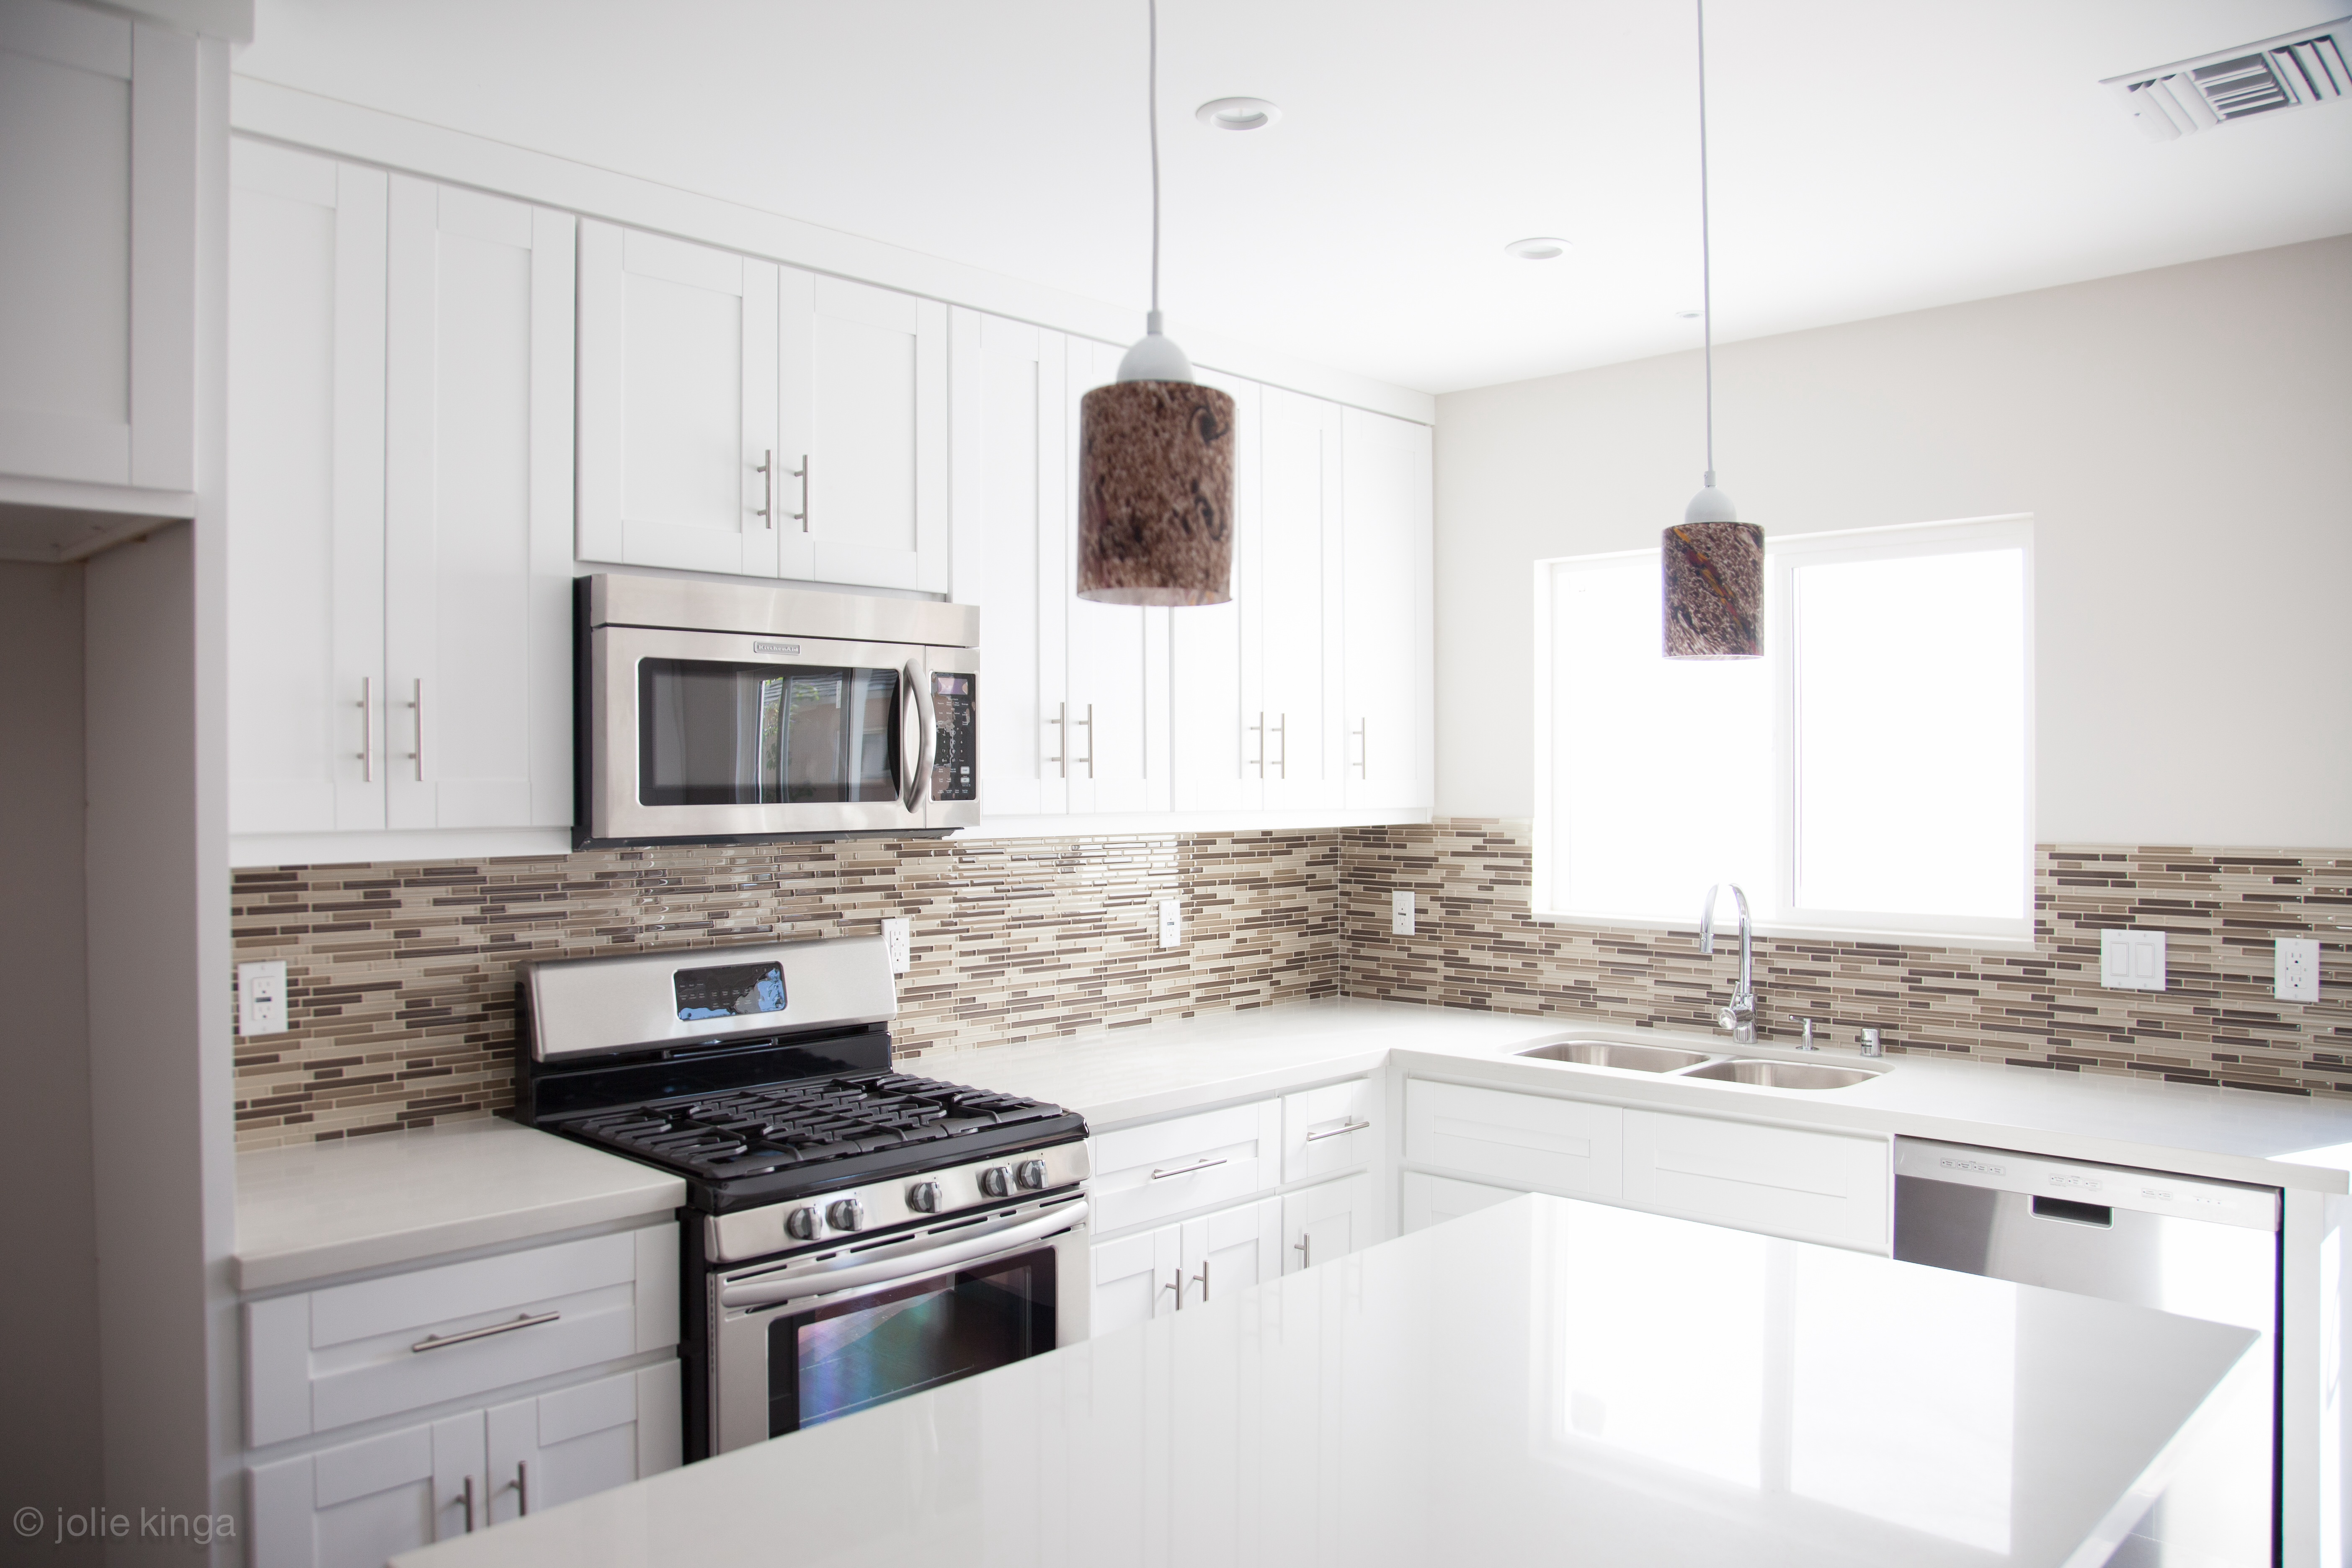 kitchen remodeling what to expect how to remodel kitchen Minor Kitchen Remodels Consider Spending Less Than Average